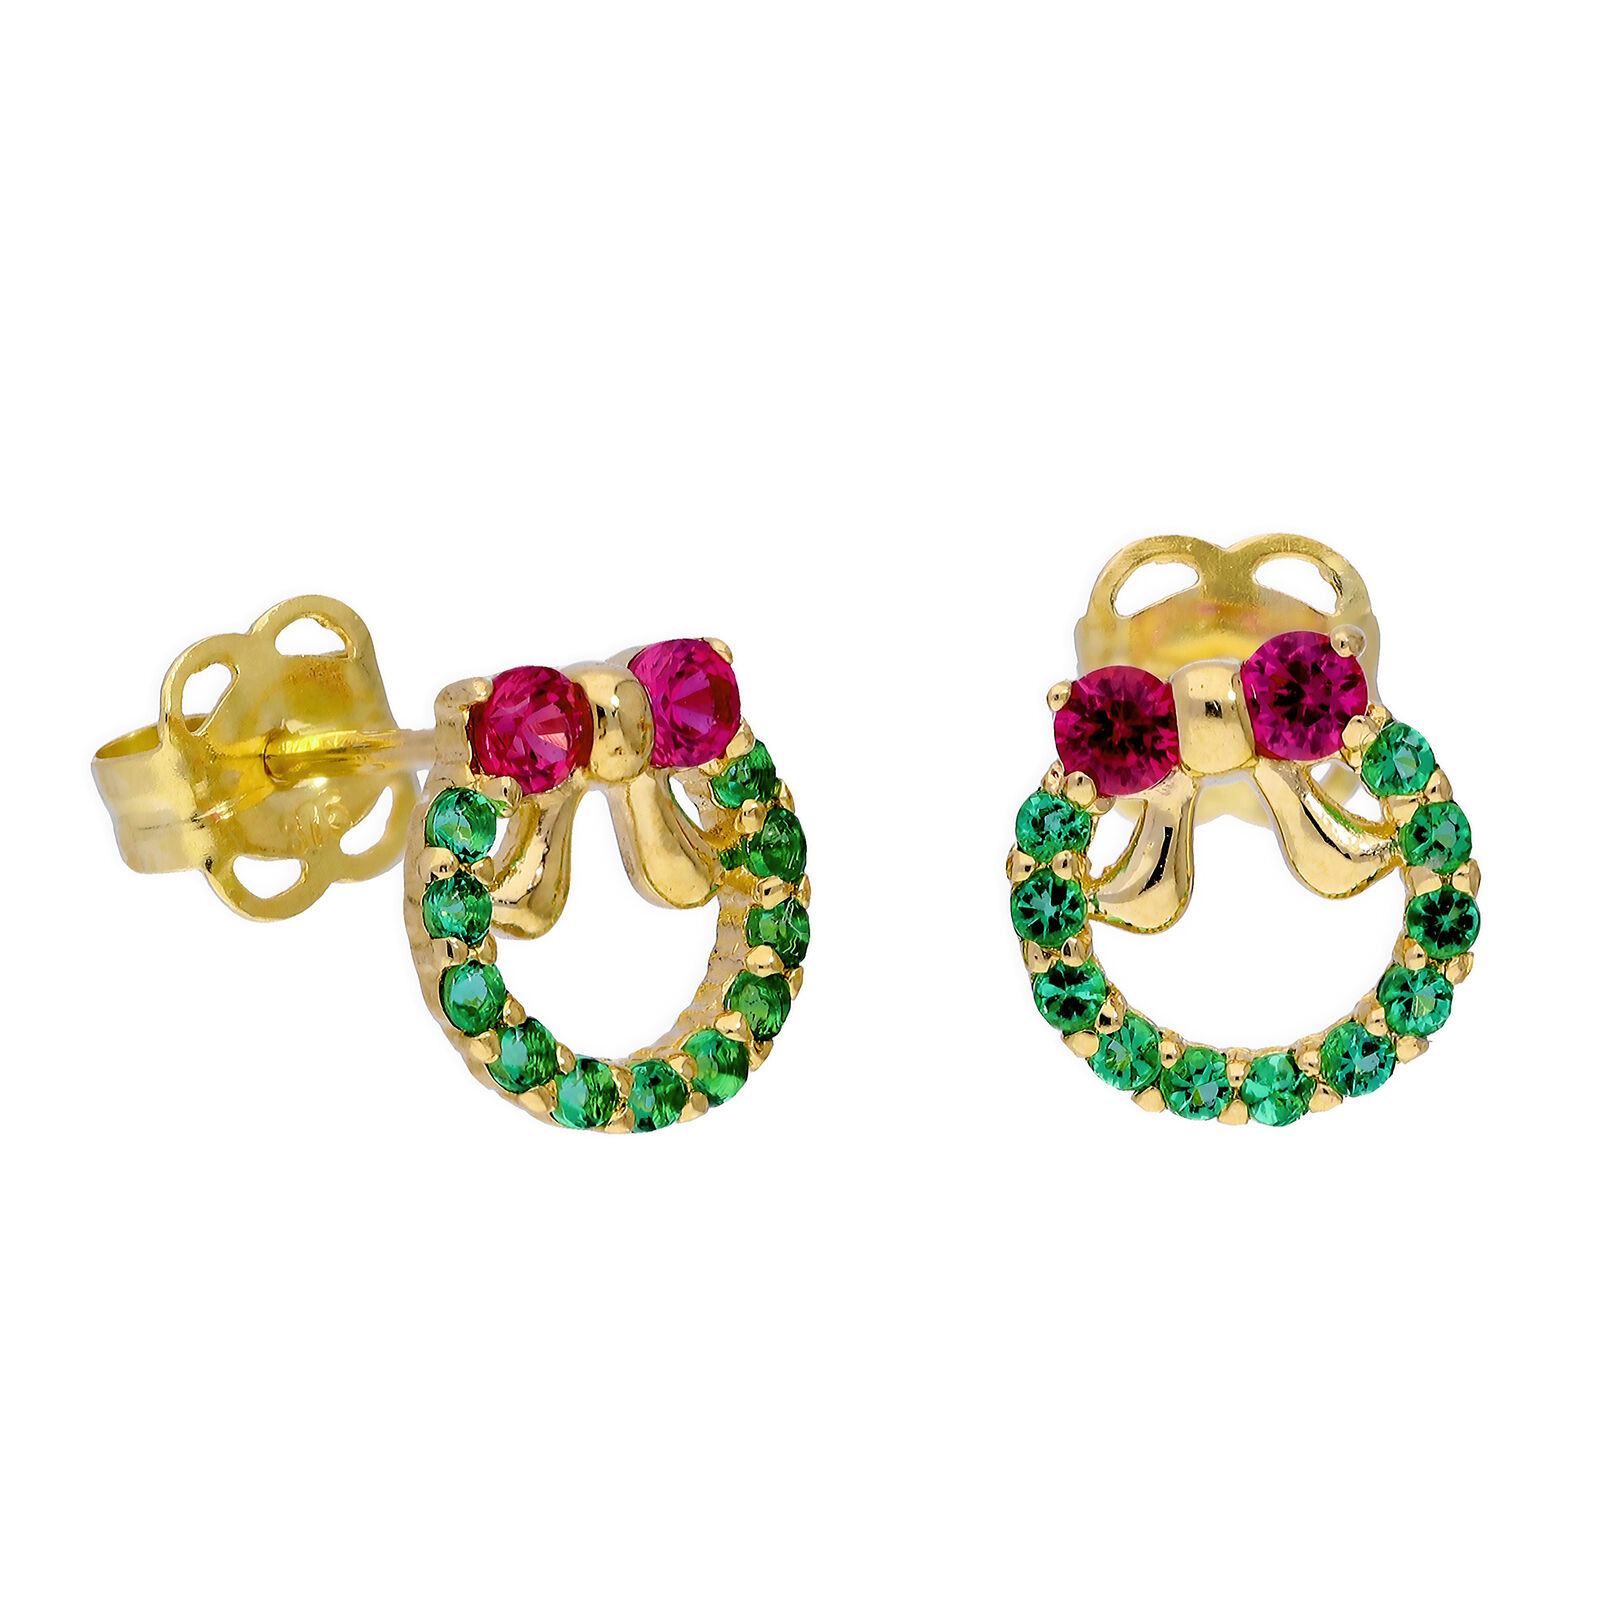 9ct gold Ruby CZ & Emerald CZ Colourful Christmas Wreath Stud Earrings Festive